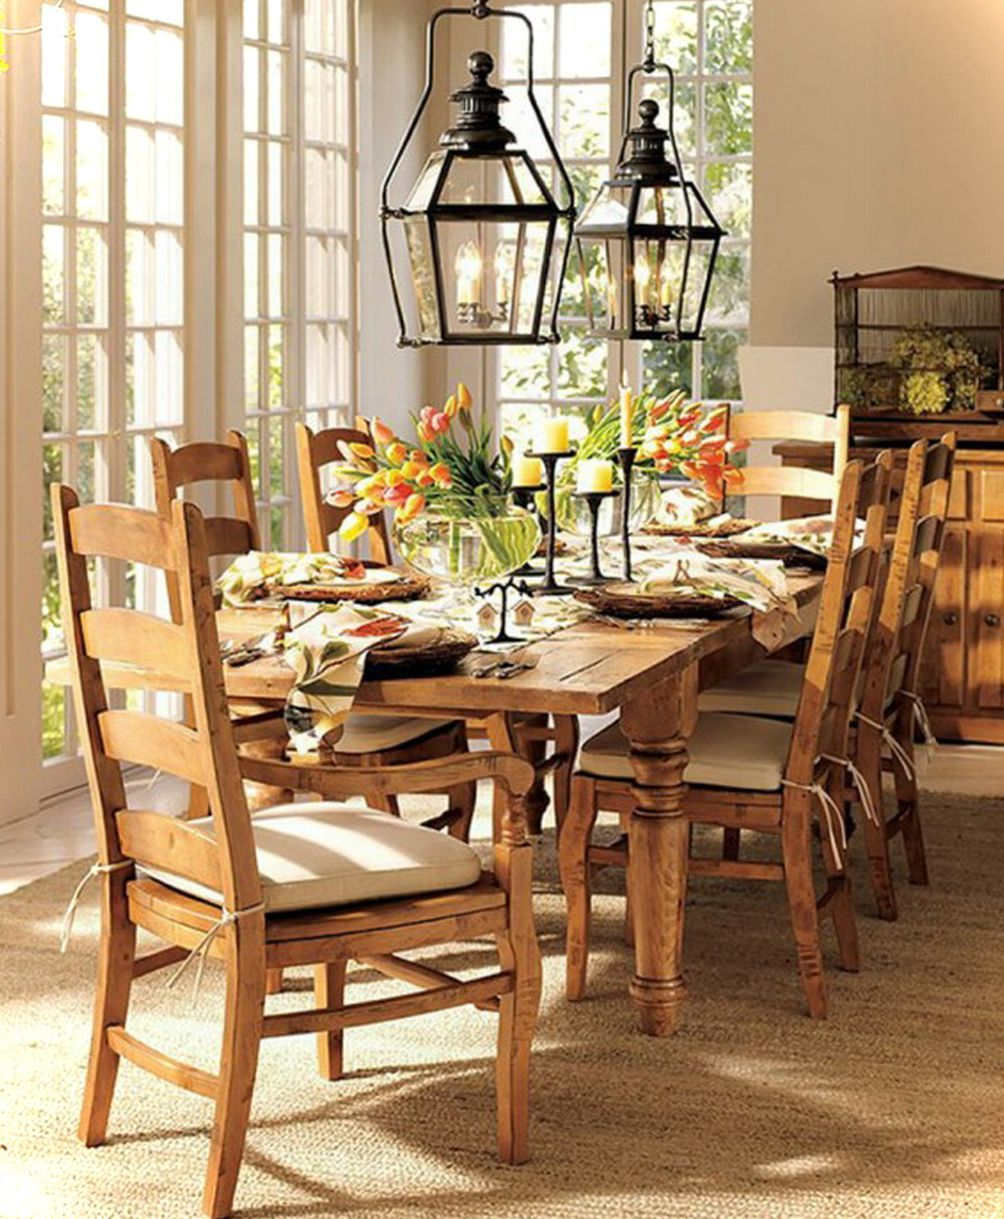 Lighting Dining Room 1000 Images About Living Room Light On Pinterest Fabric Shades